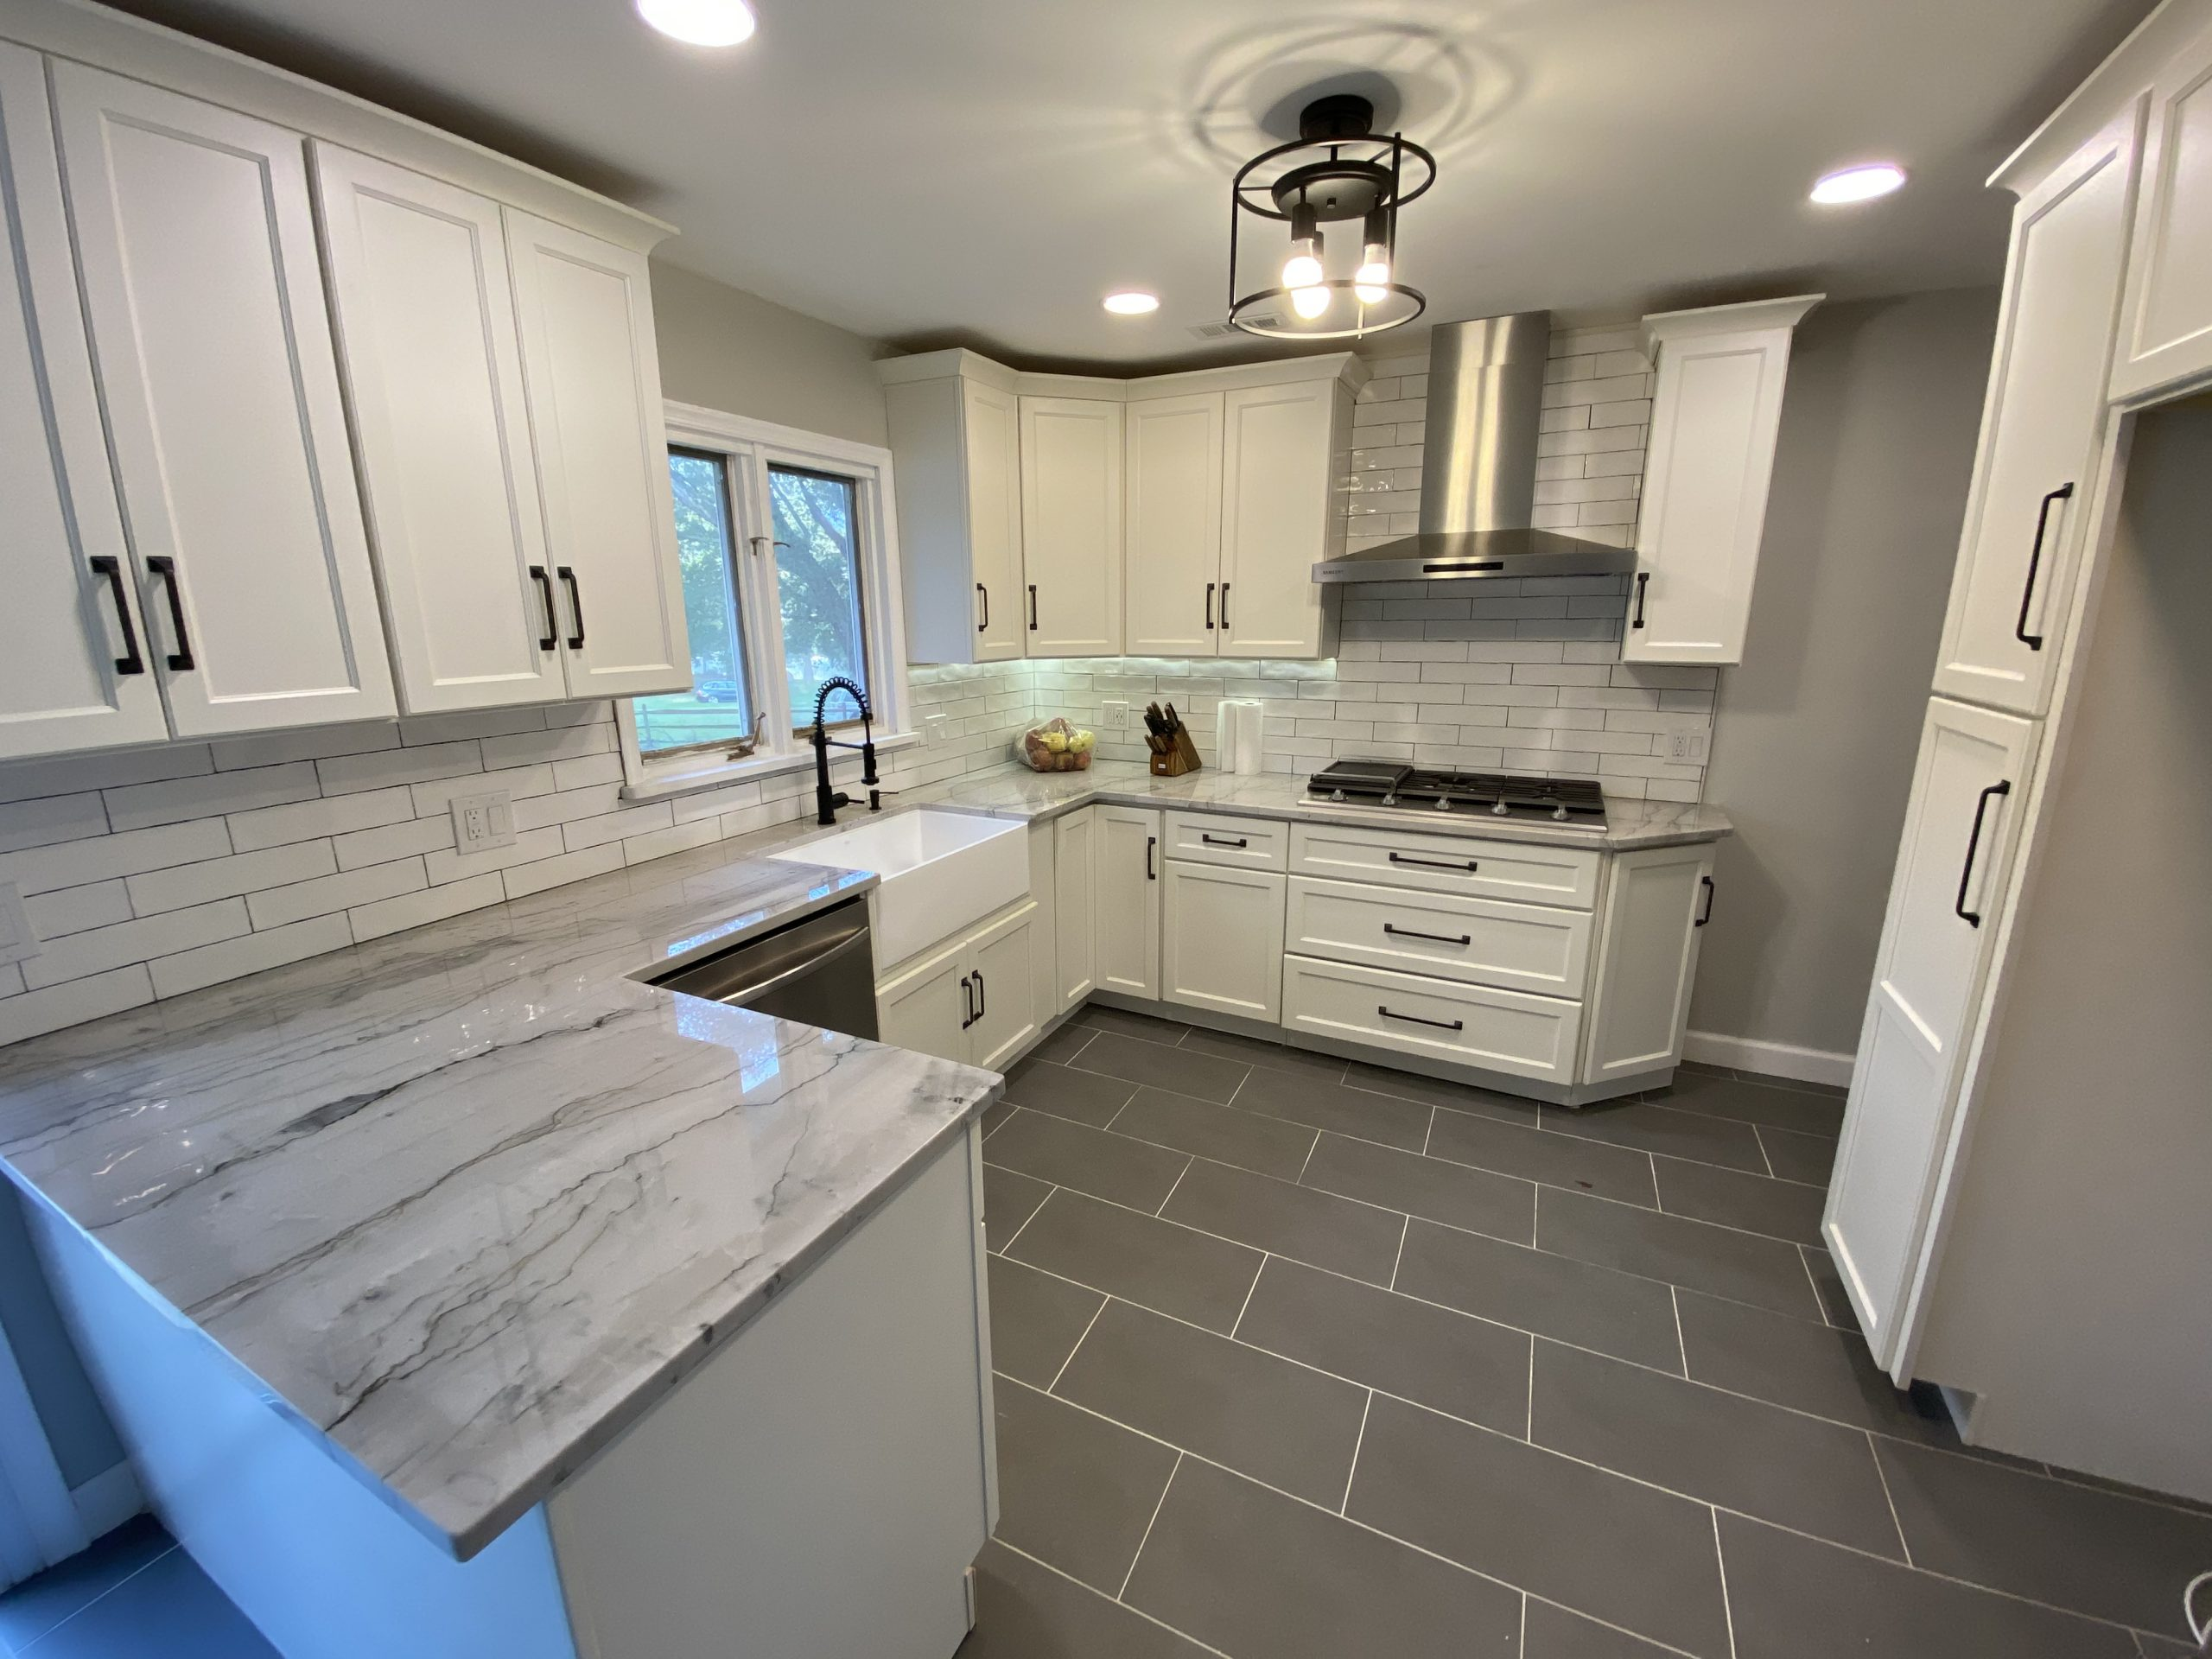 The Pros of Remodeling Your Kitchen in New Jersey